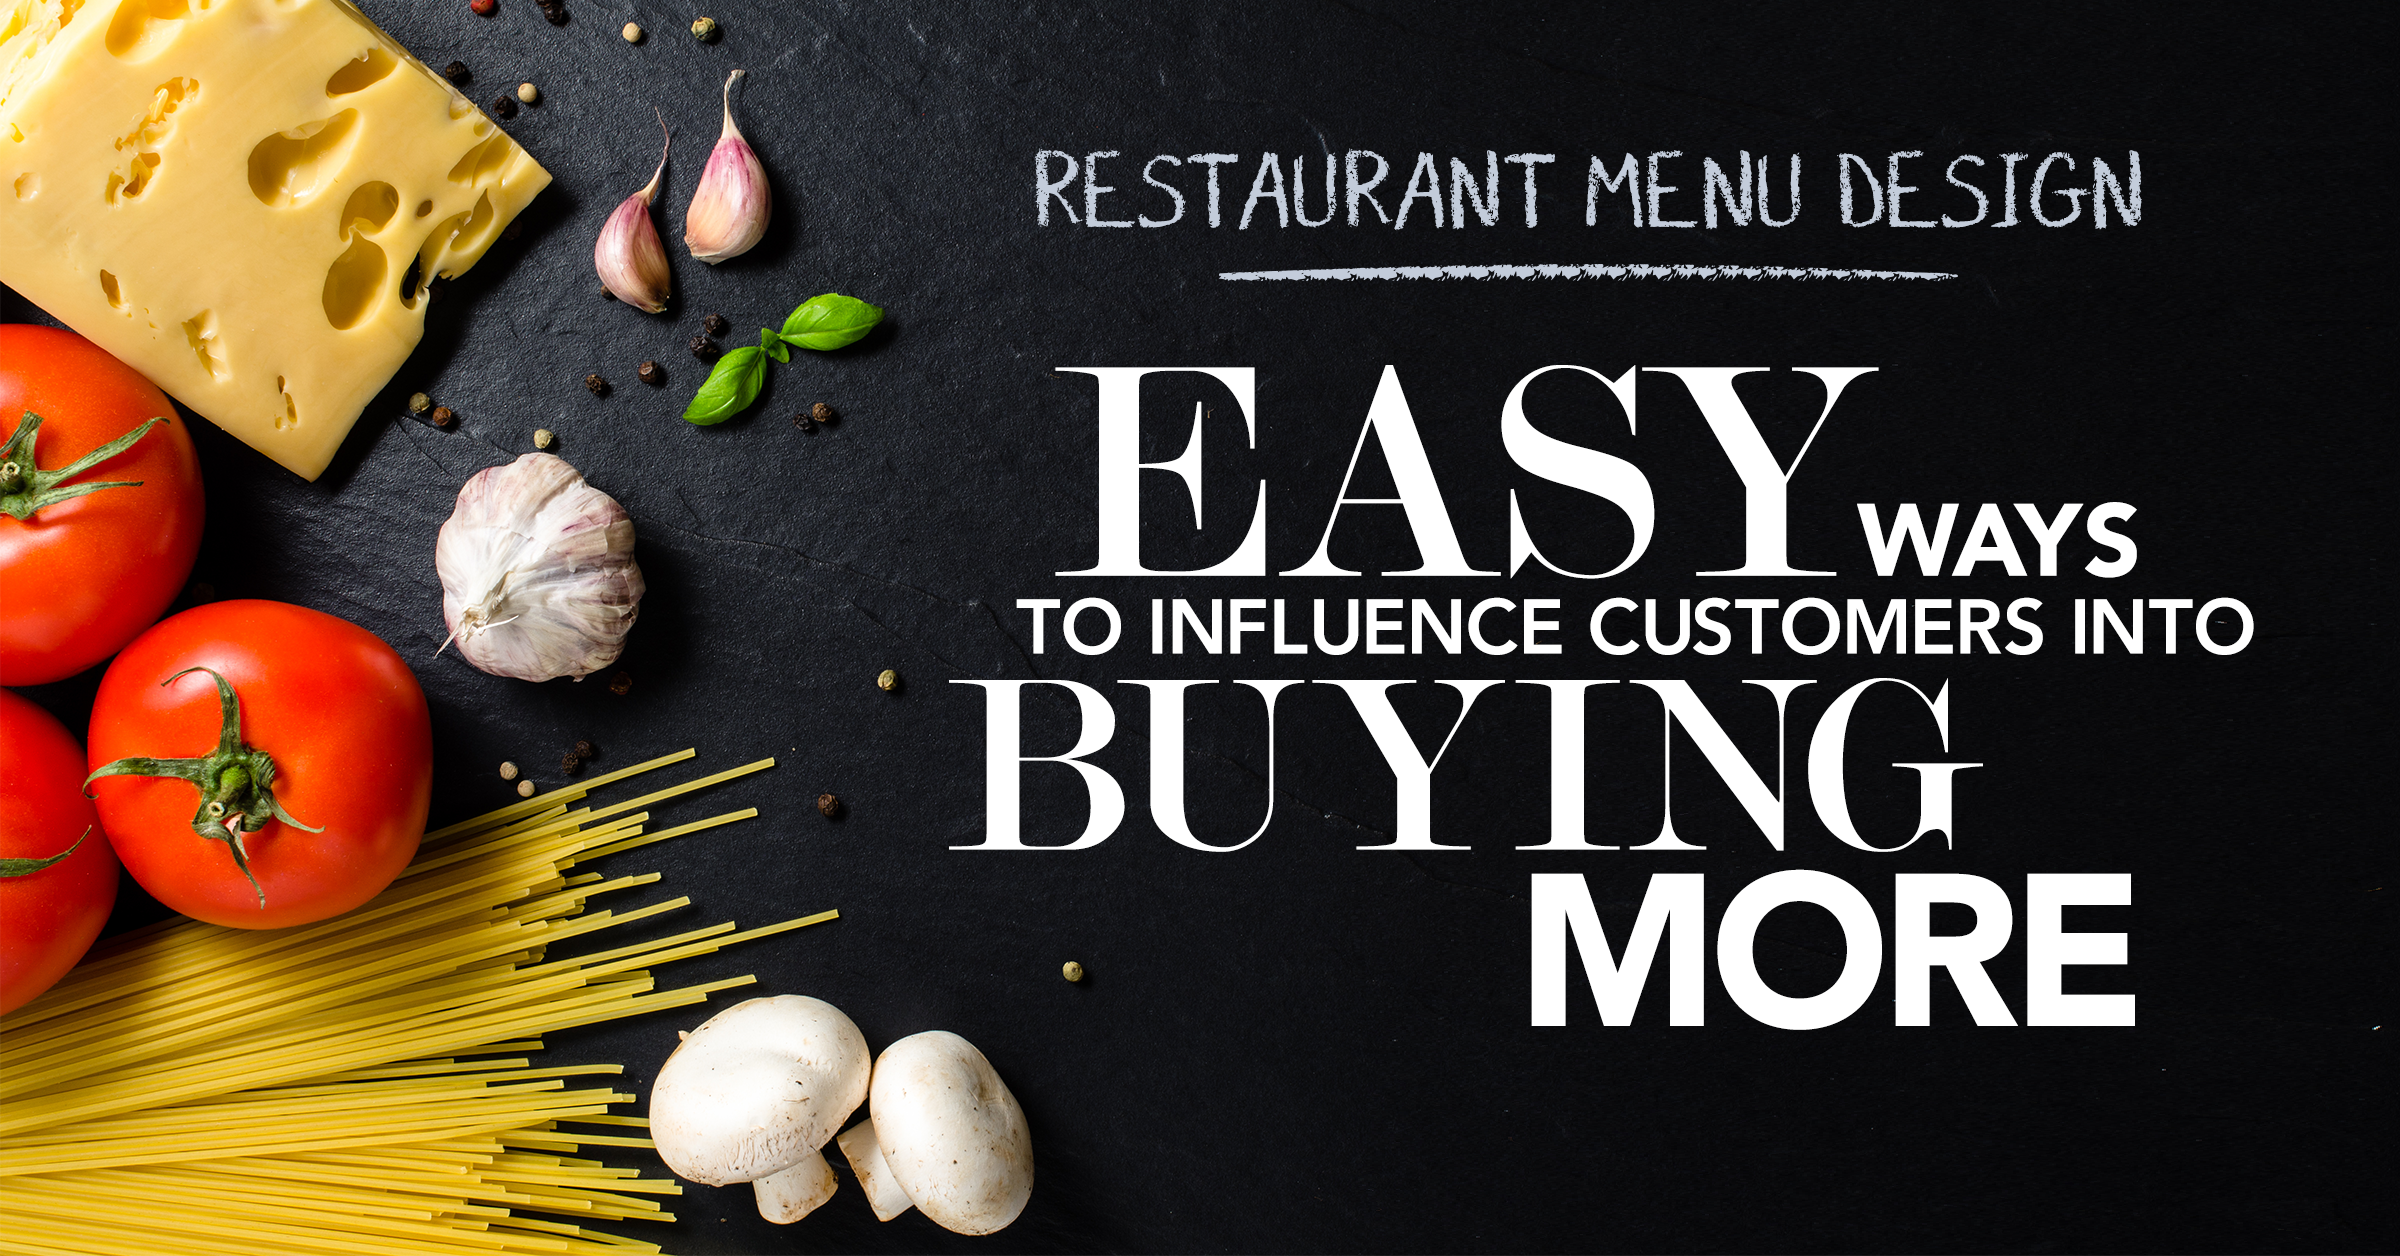 Restaurant Menu Design: Easy Ways to Influence Customers Into Buying More